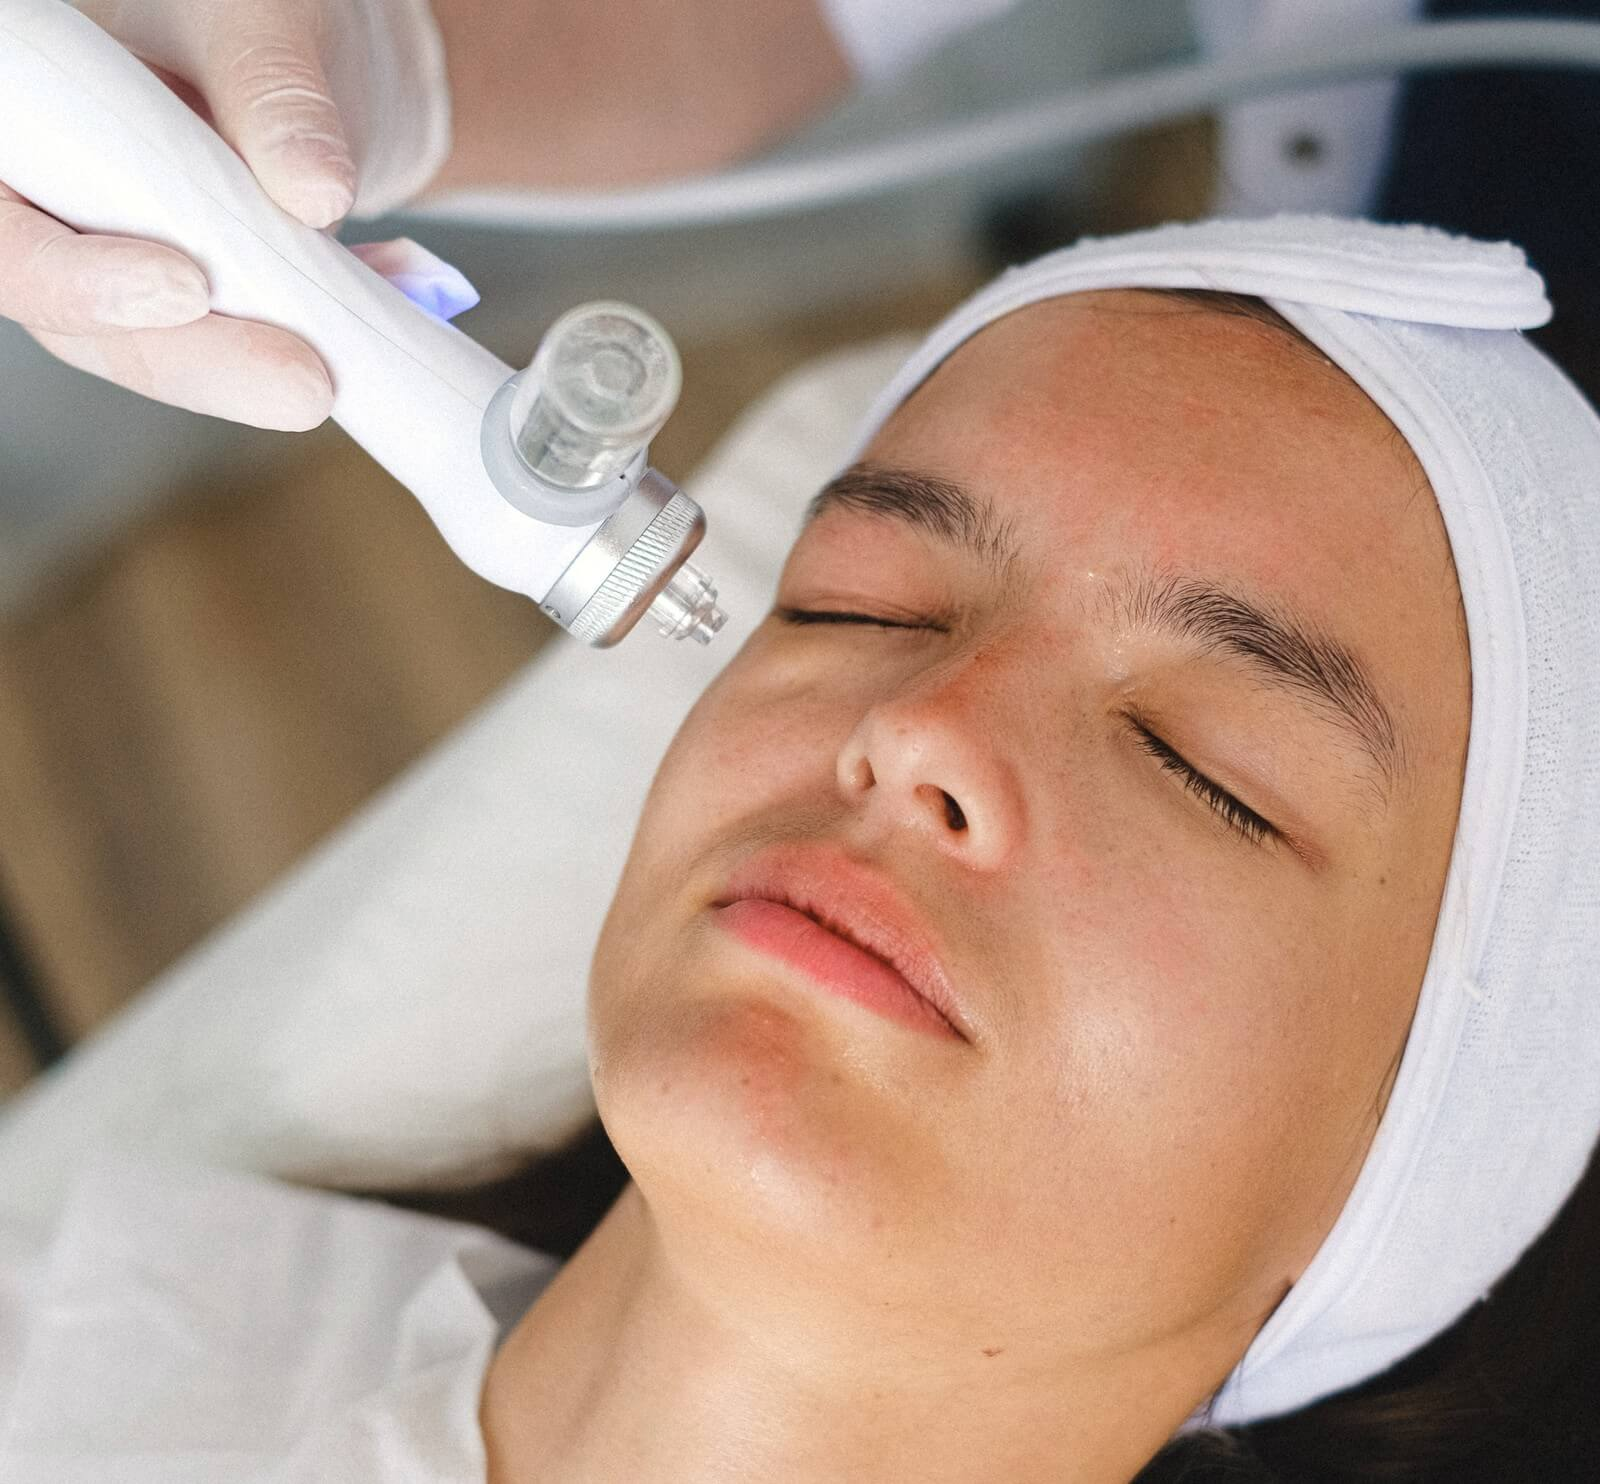 ultherapy perfomed on woman at spa